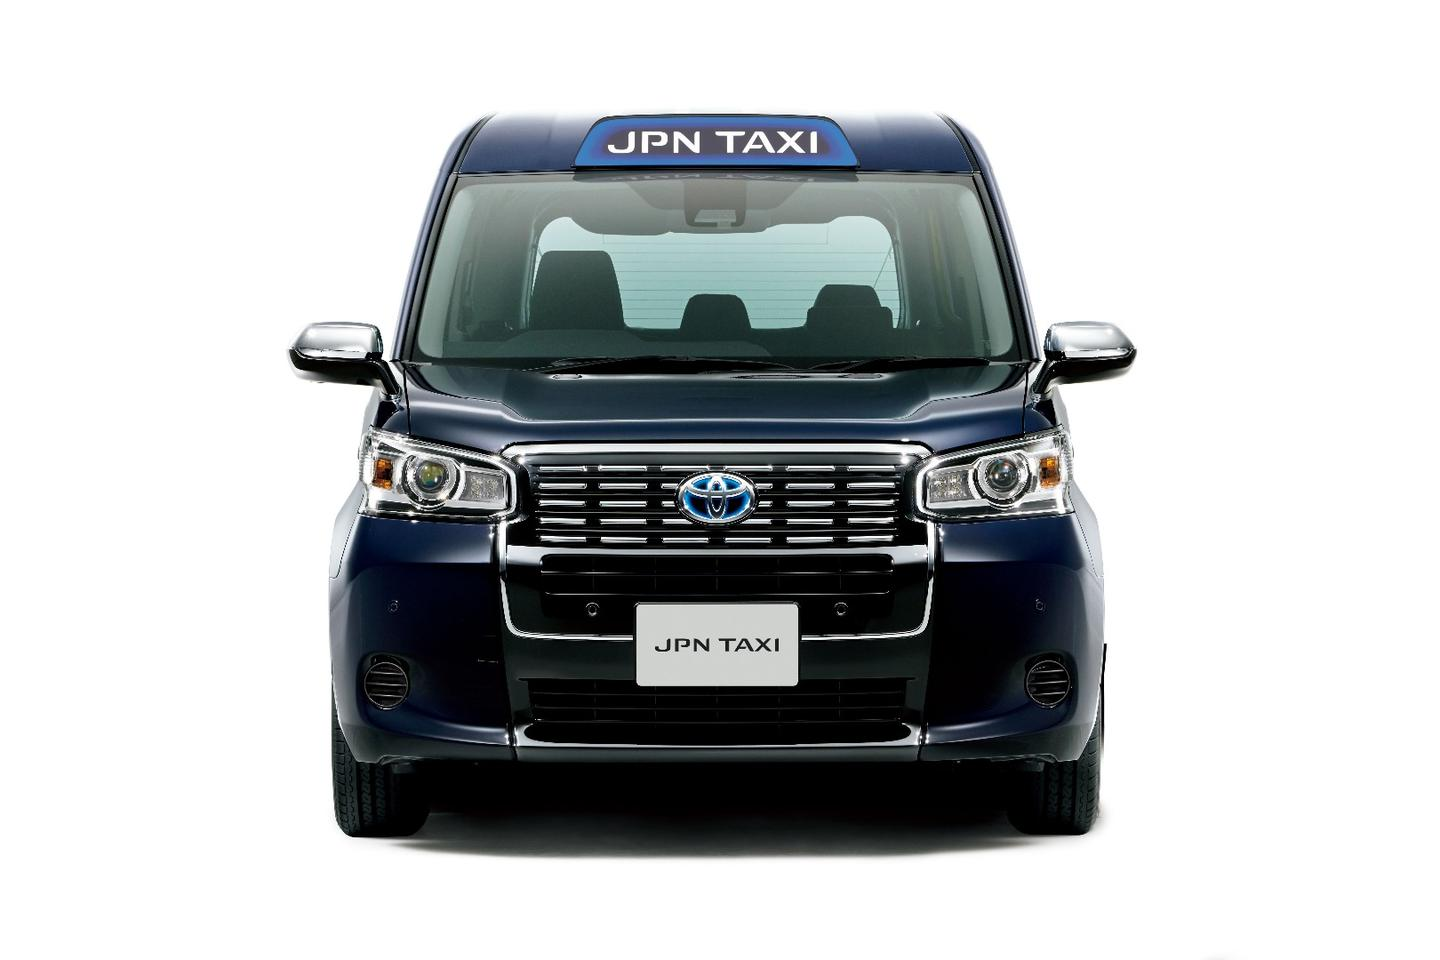 The Toyota JPN Taxi has been revamped for the new model offering